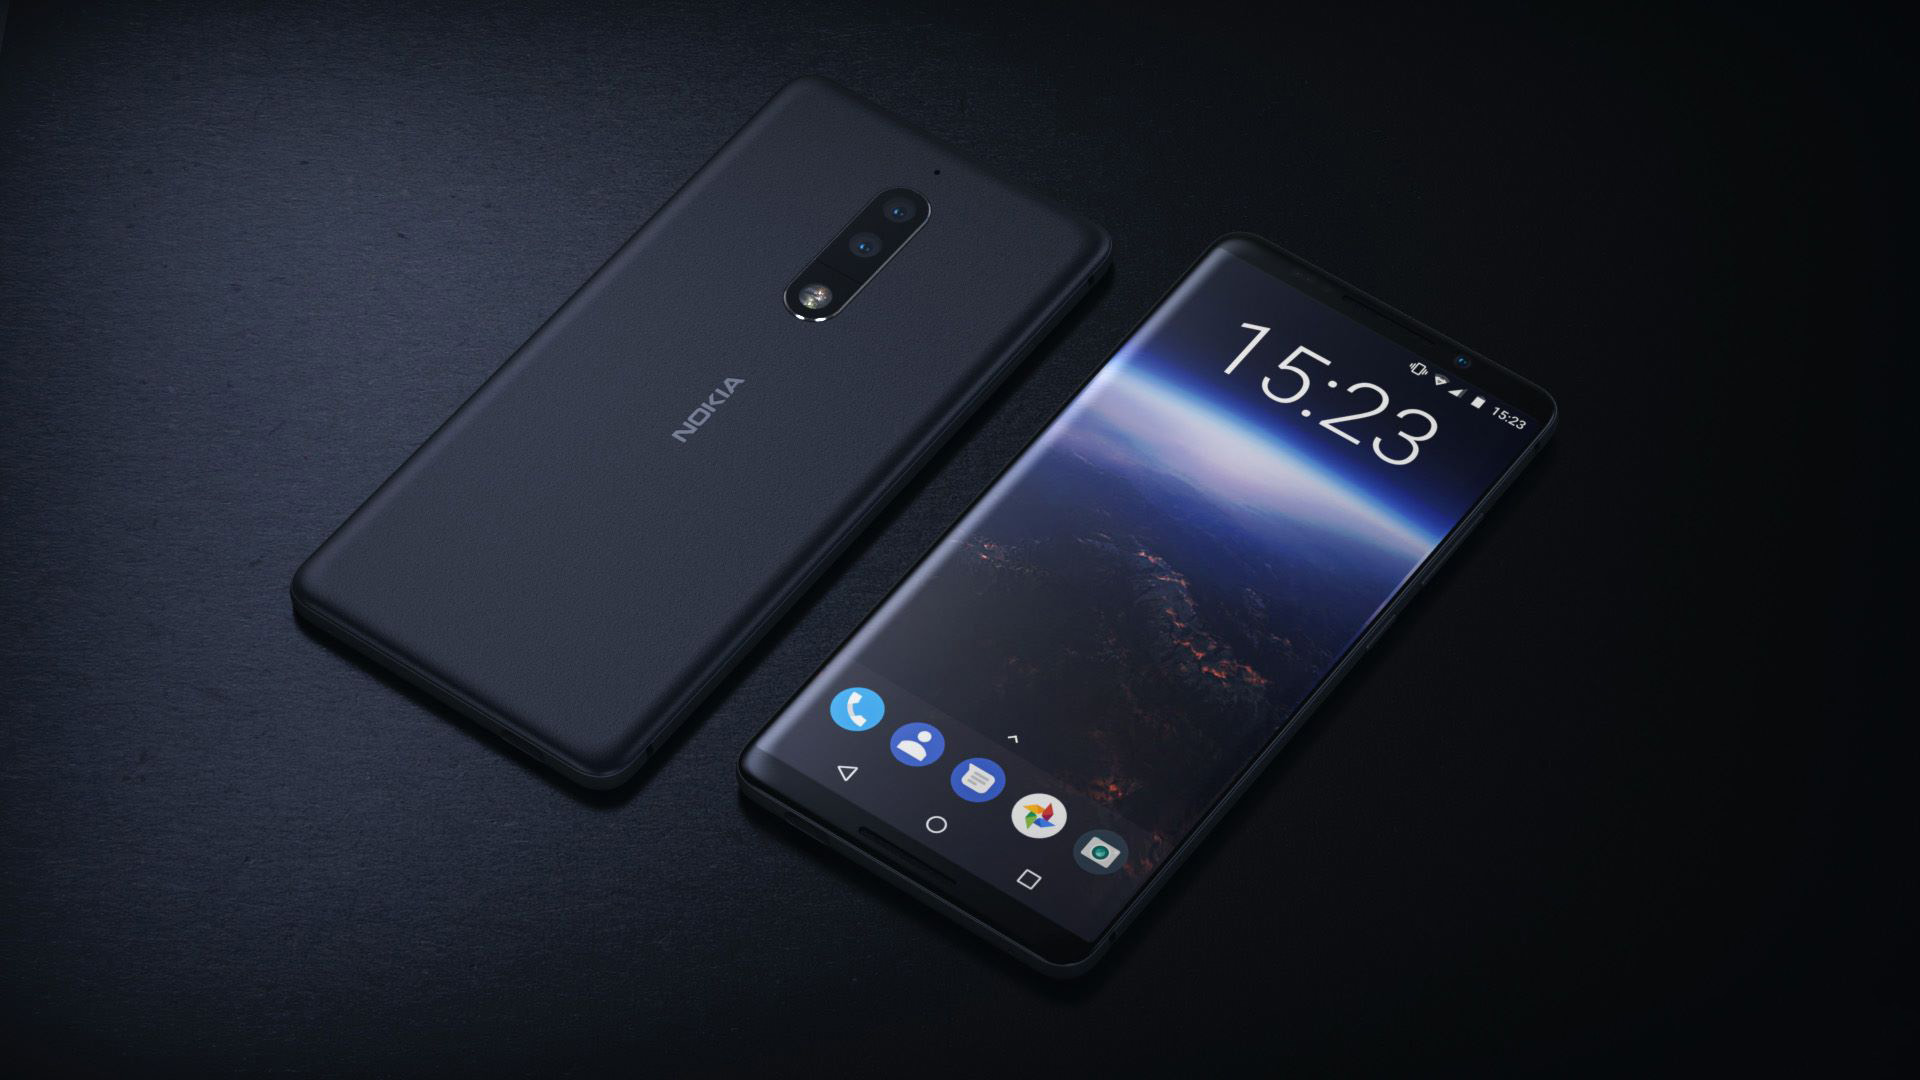 HMD Global to give the Nokia 7.1 Plus a notch display too